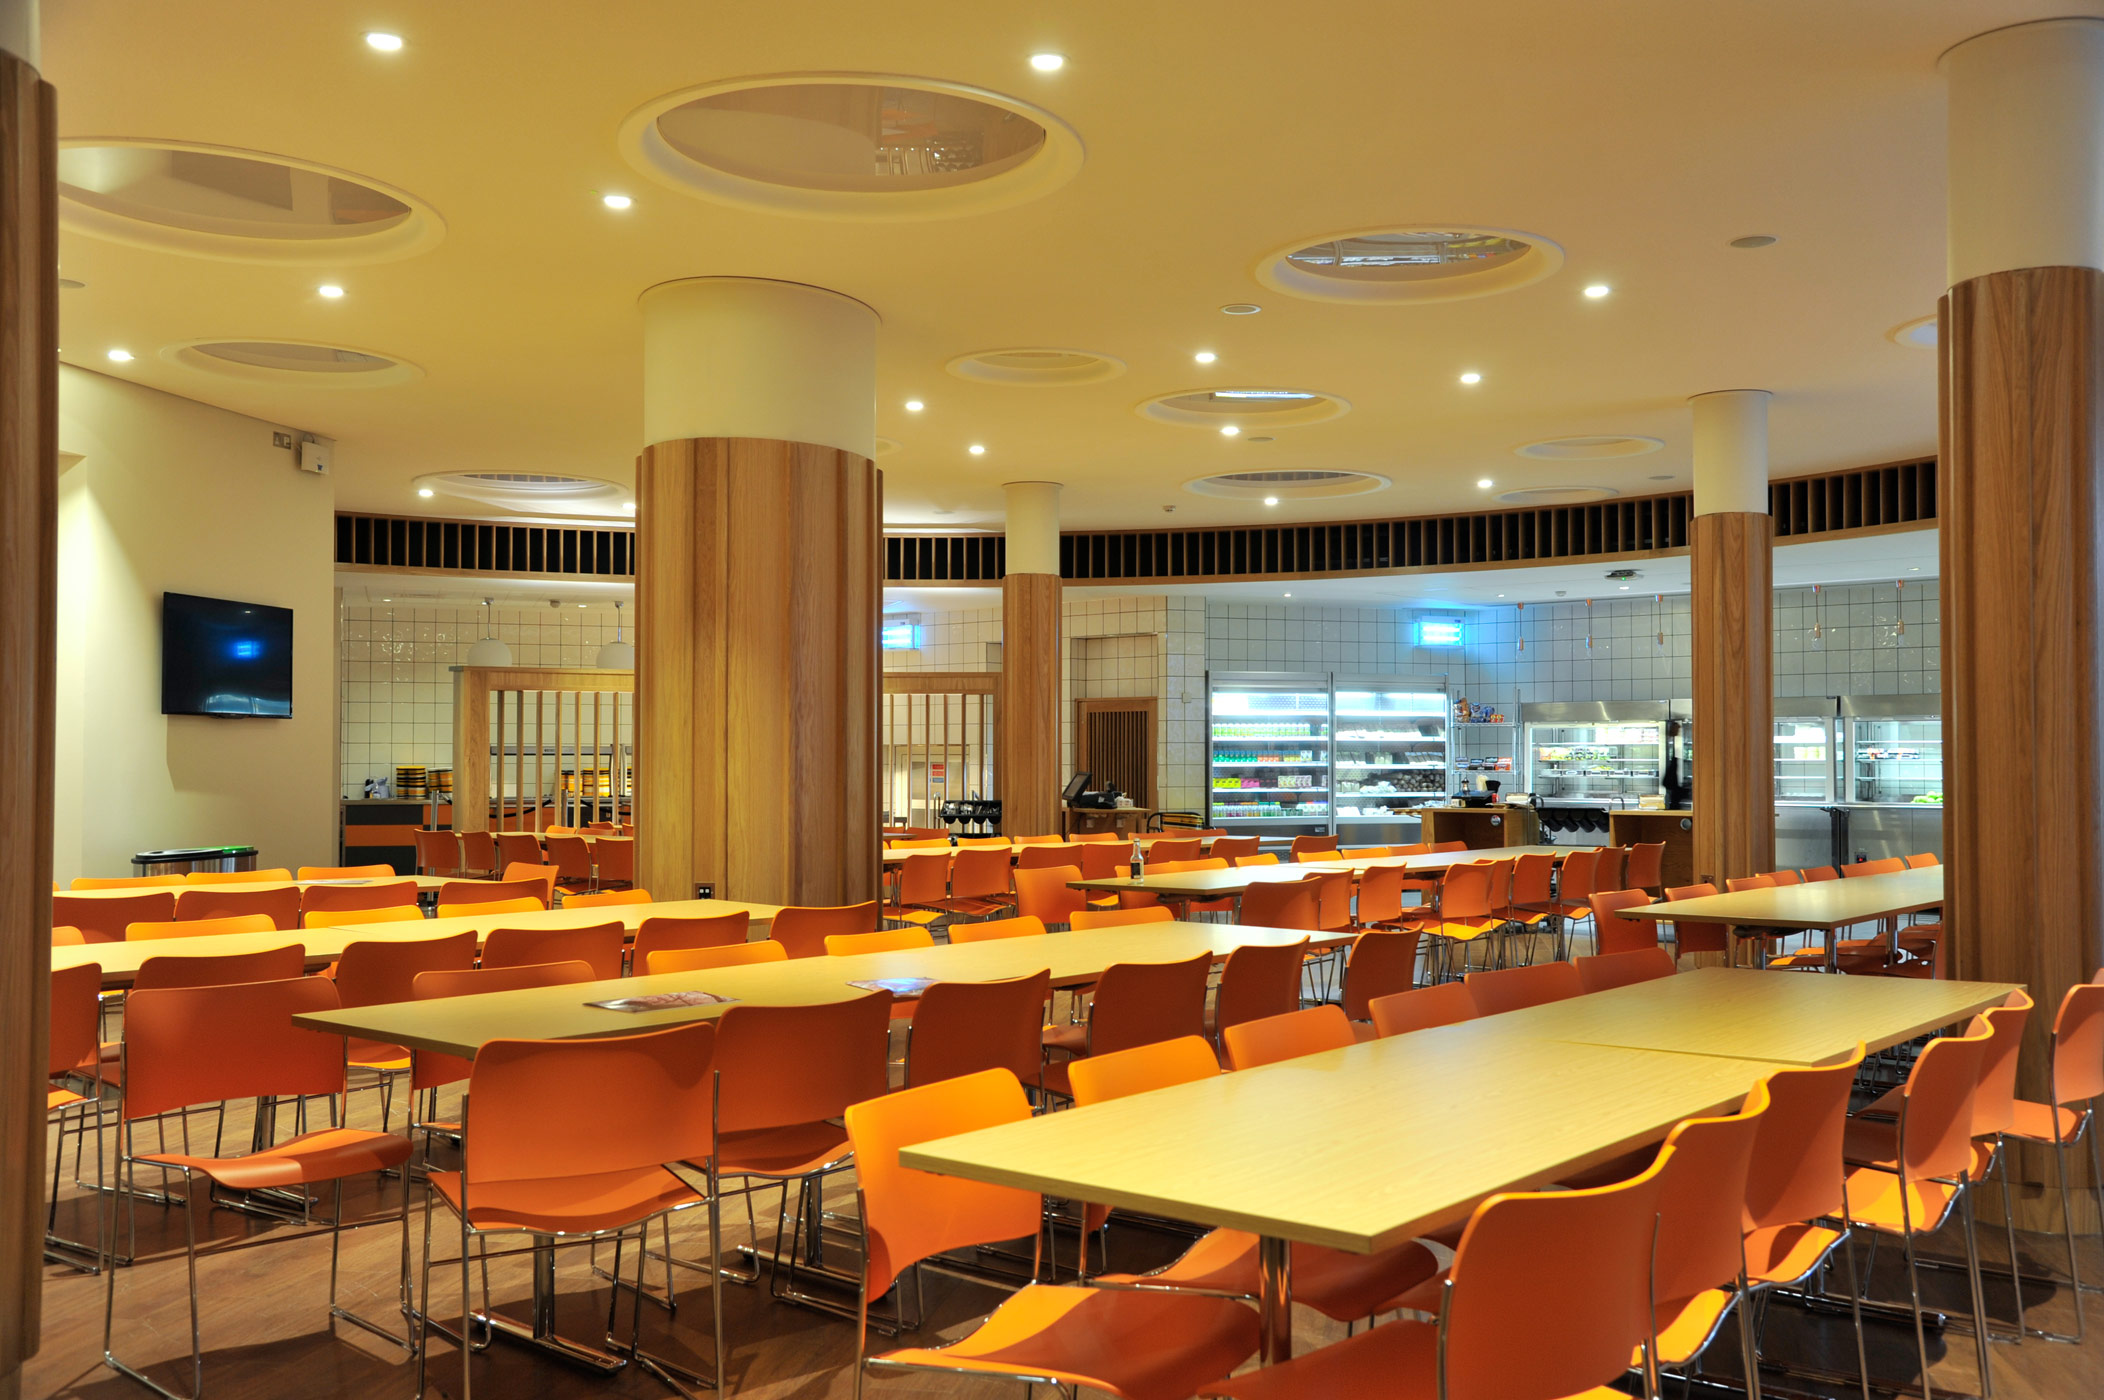 American school in london a lighting project by light and design